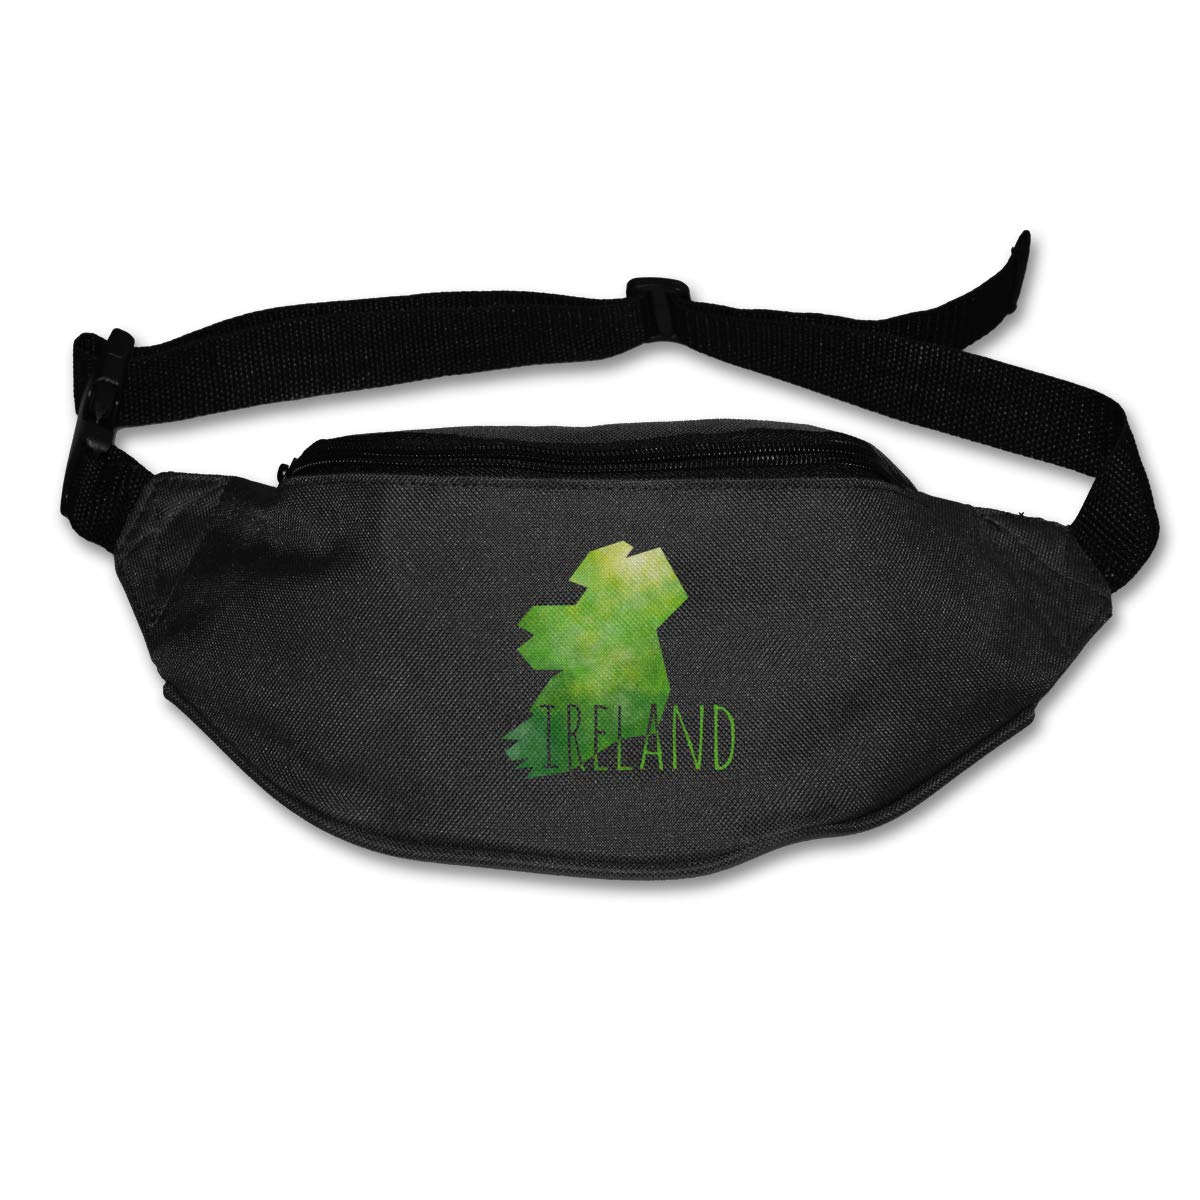 Geometry Ireland Sport Waist Pack Fanny Pack Adjustable For Hike